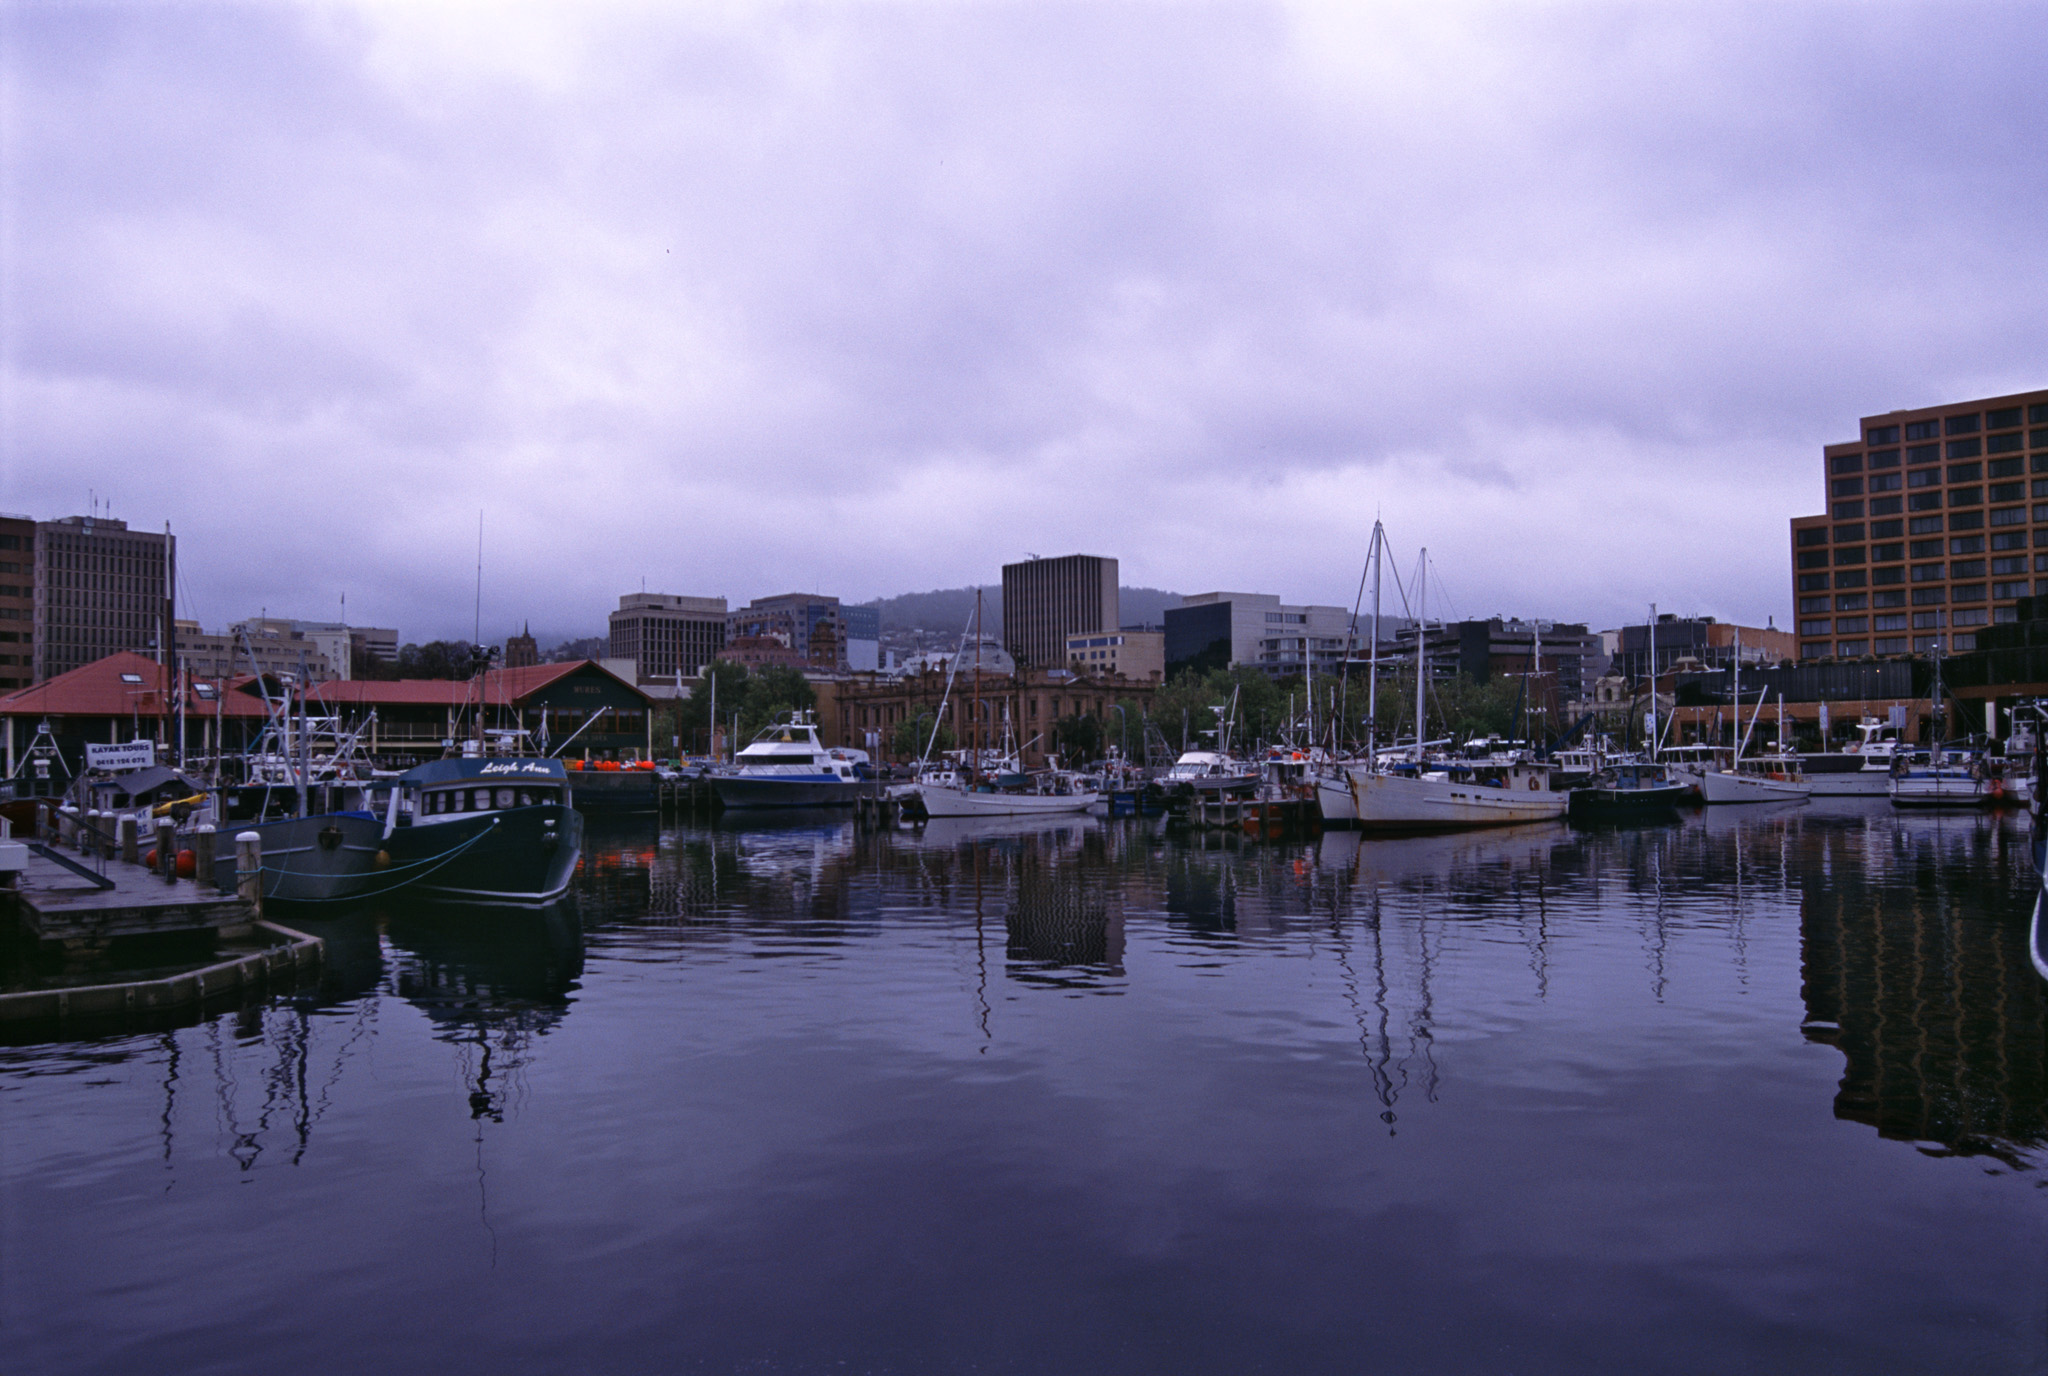 Hobart harbor, Tasmania on the Derwent River with a variety of ships and boats moored at the quays in sheltered water on a cloudy day